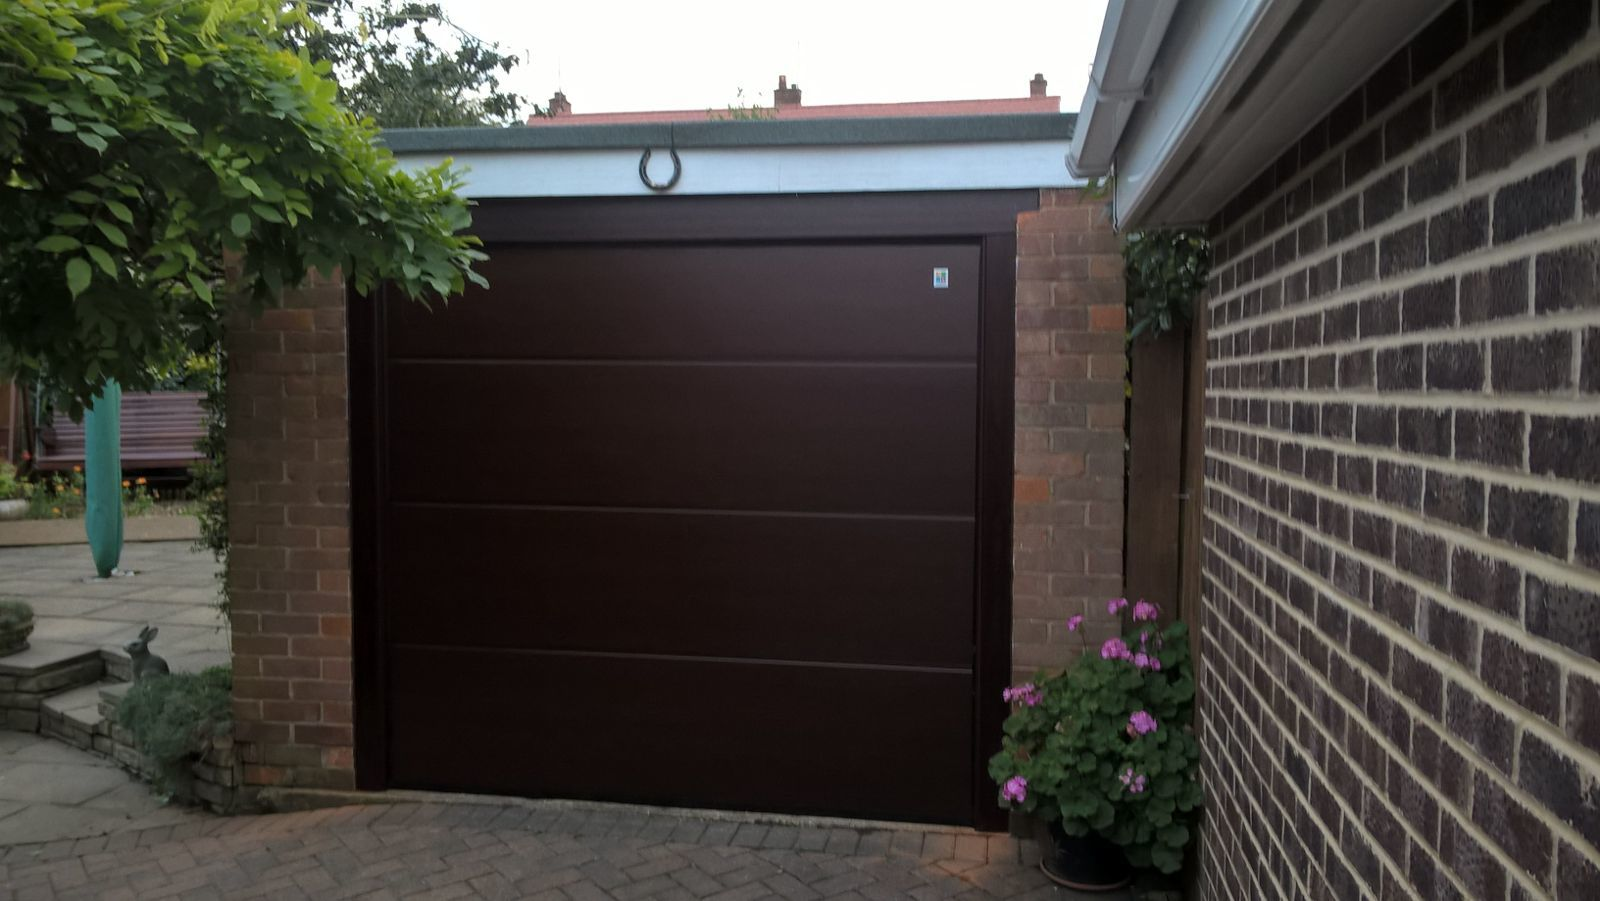 Large Ribbed Sectional Garage Door